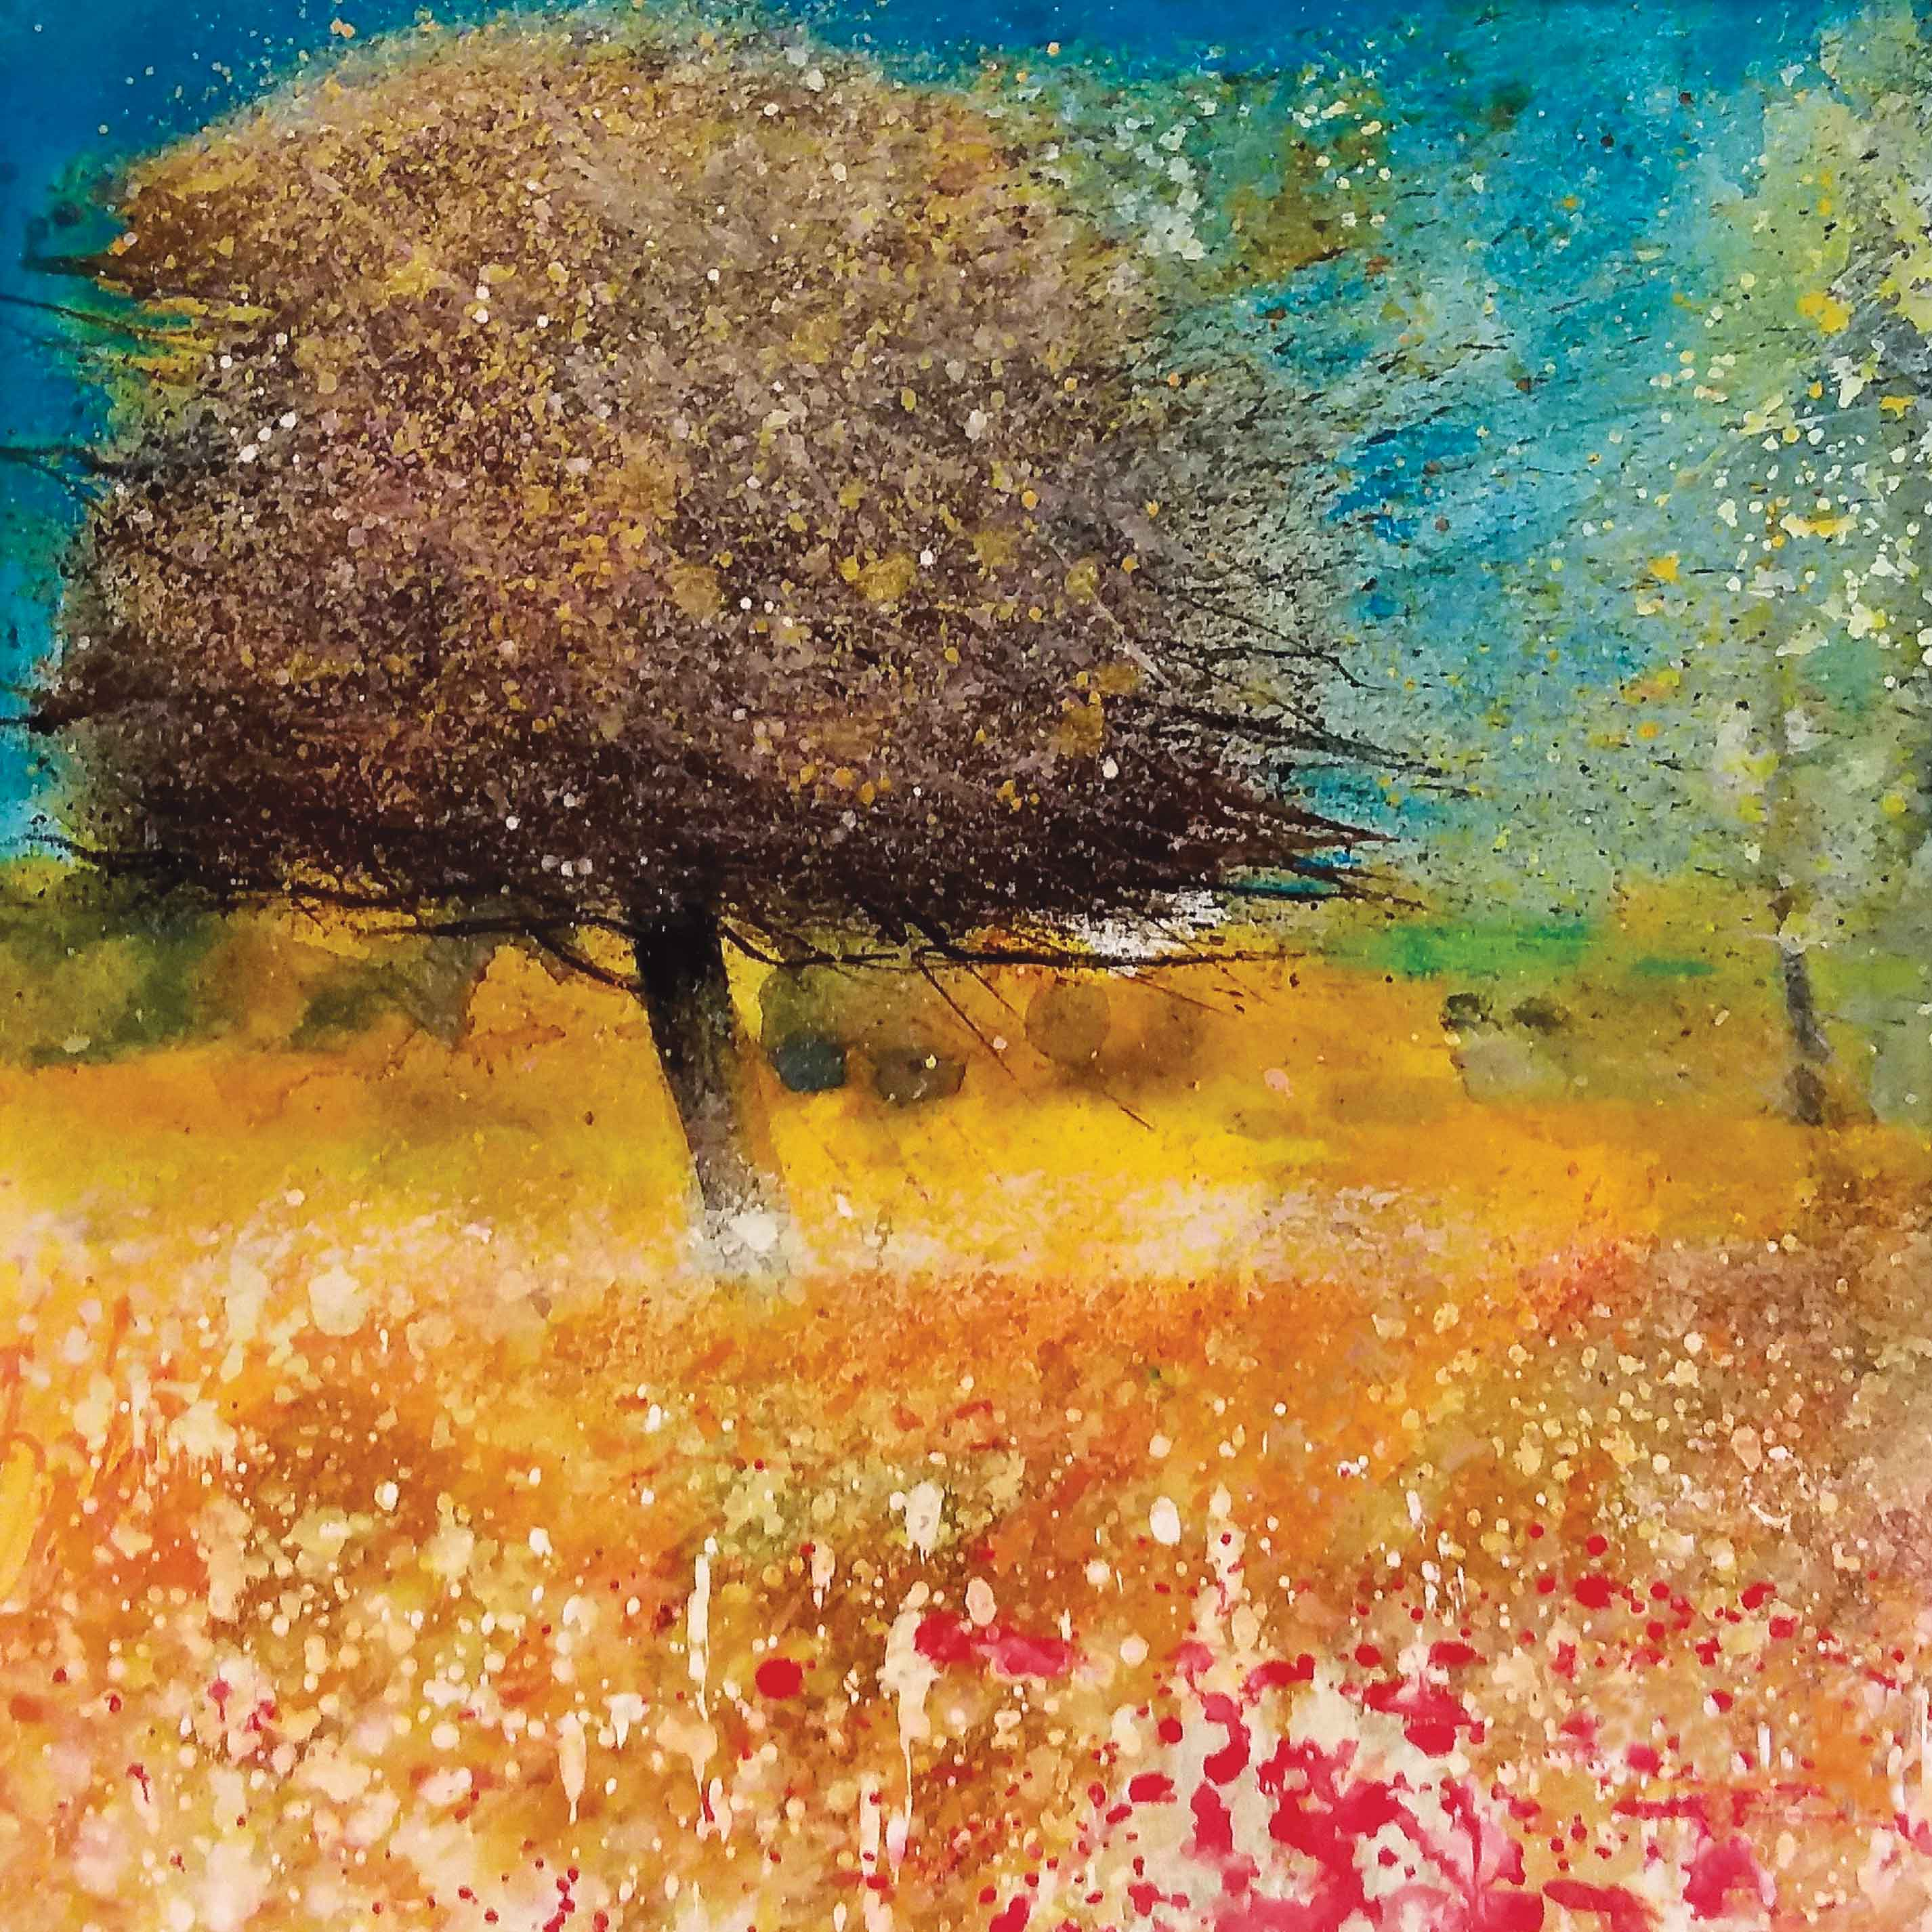 Art Greeting Card by Sue Howells, watercolour, tree in meadow